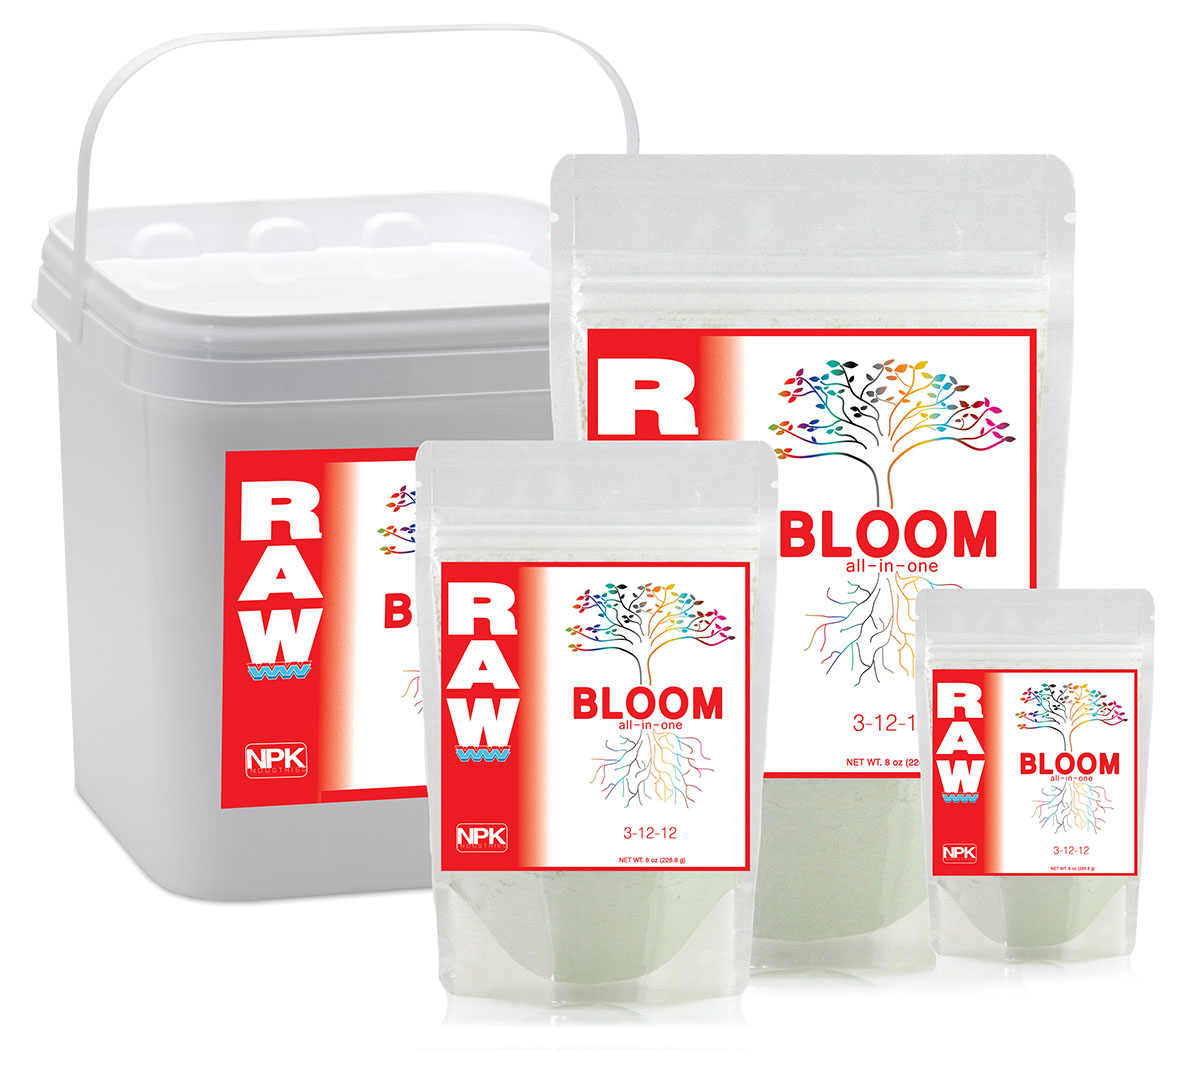 NPK RAW BLOOM 2 LBS